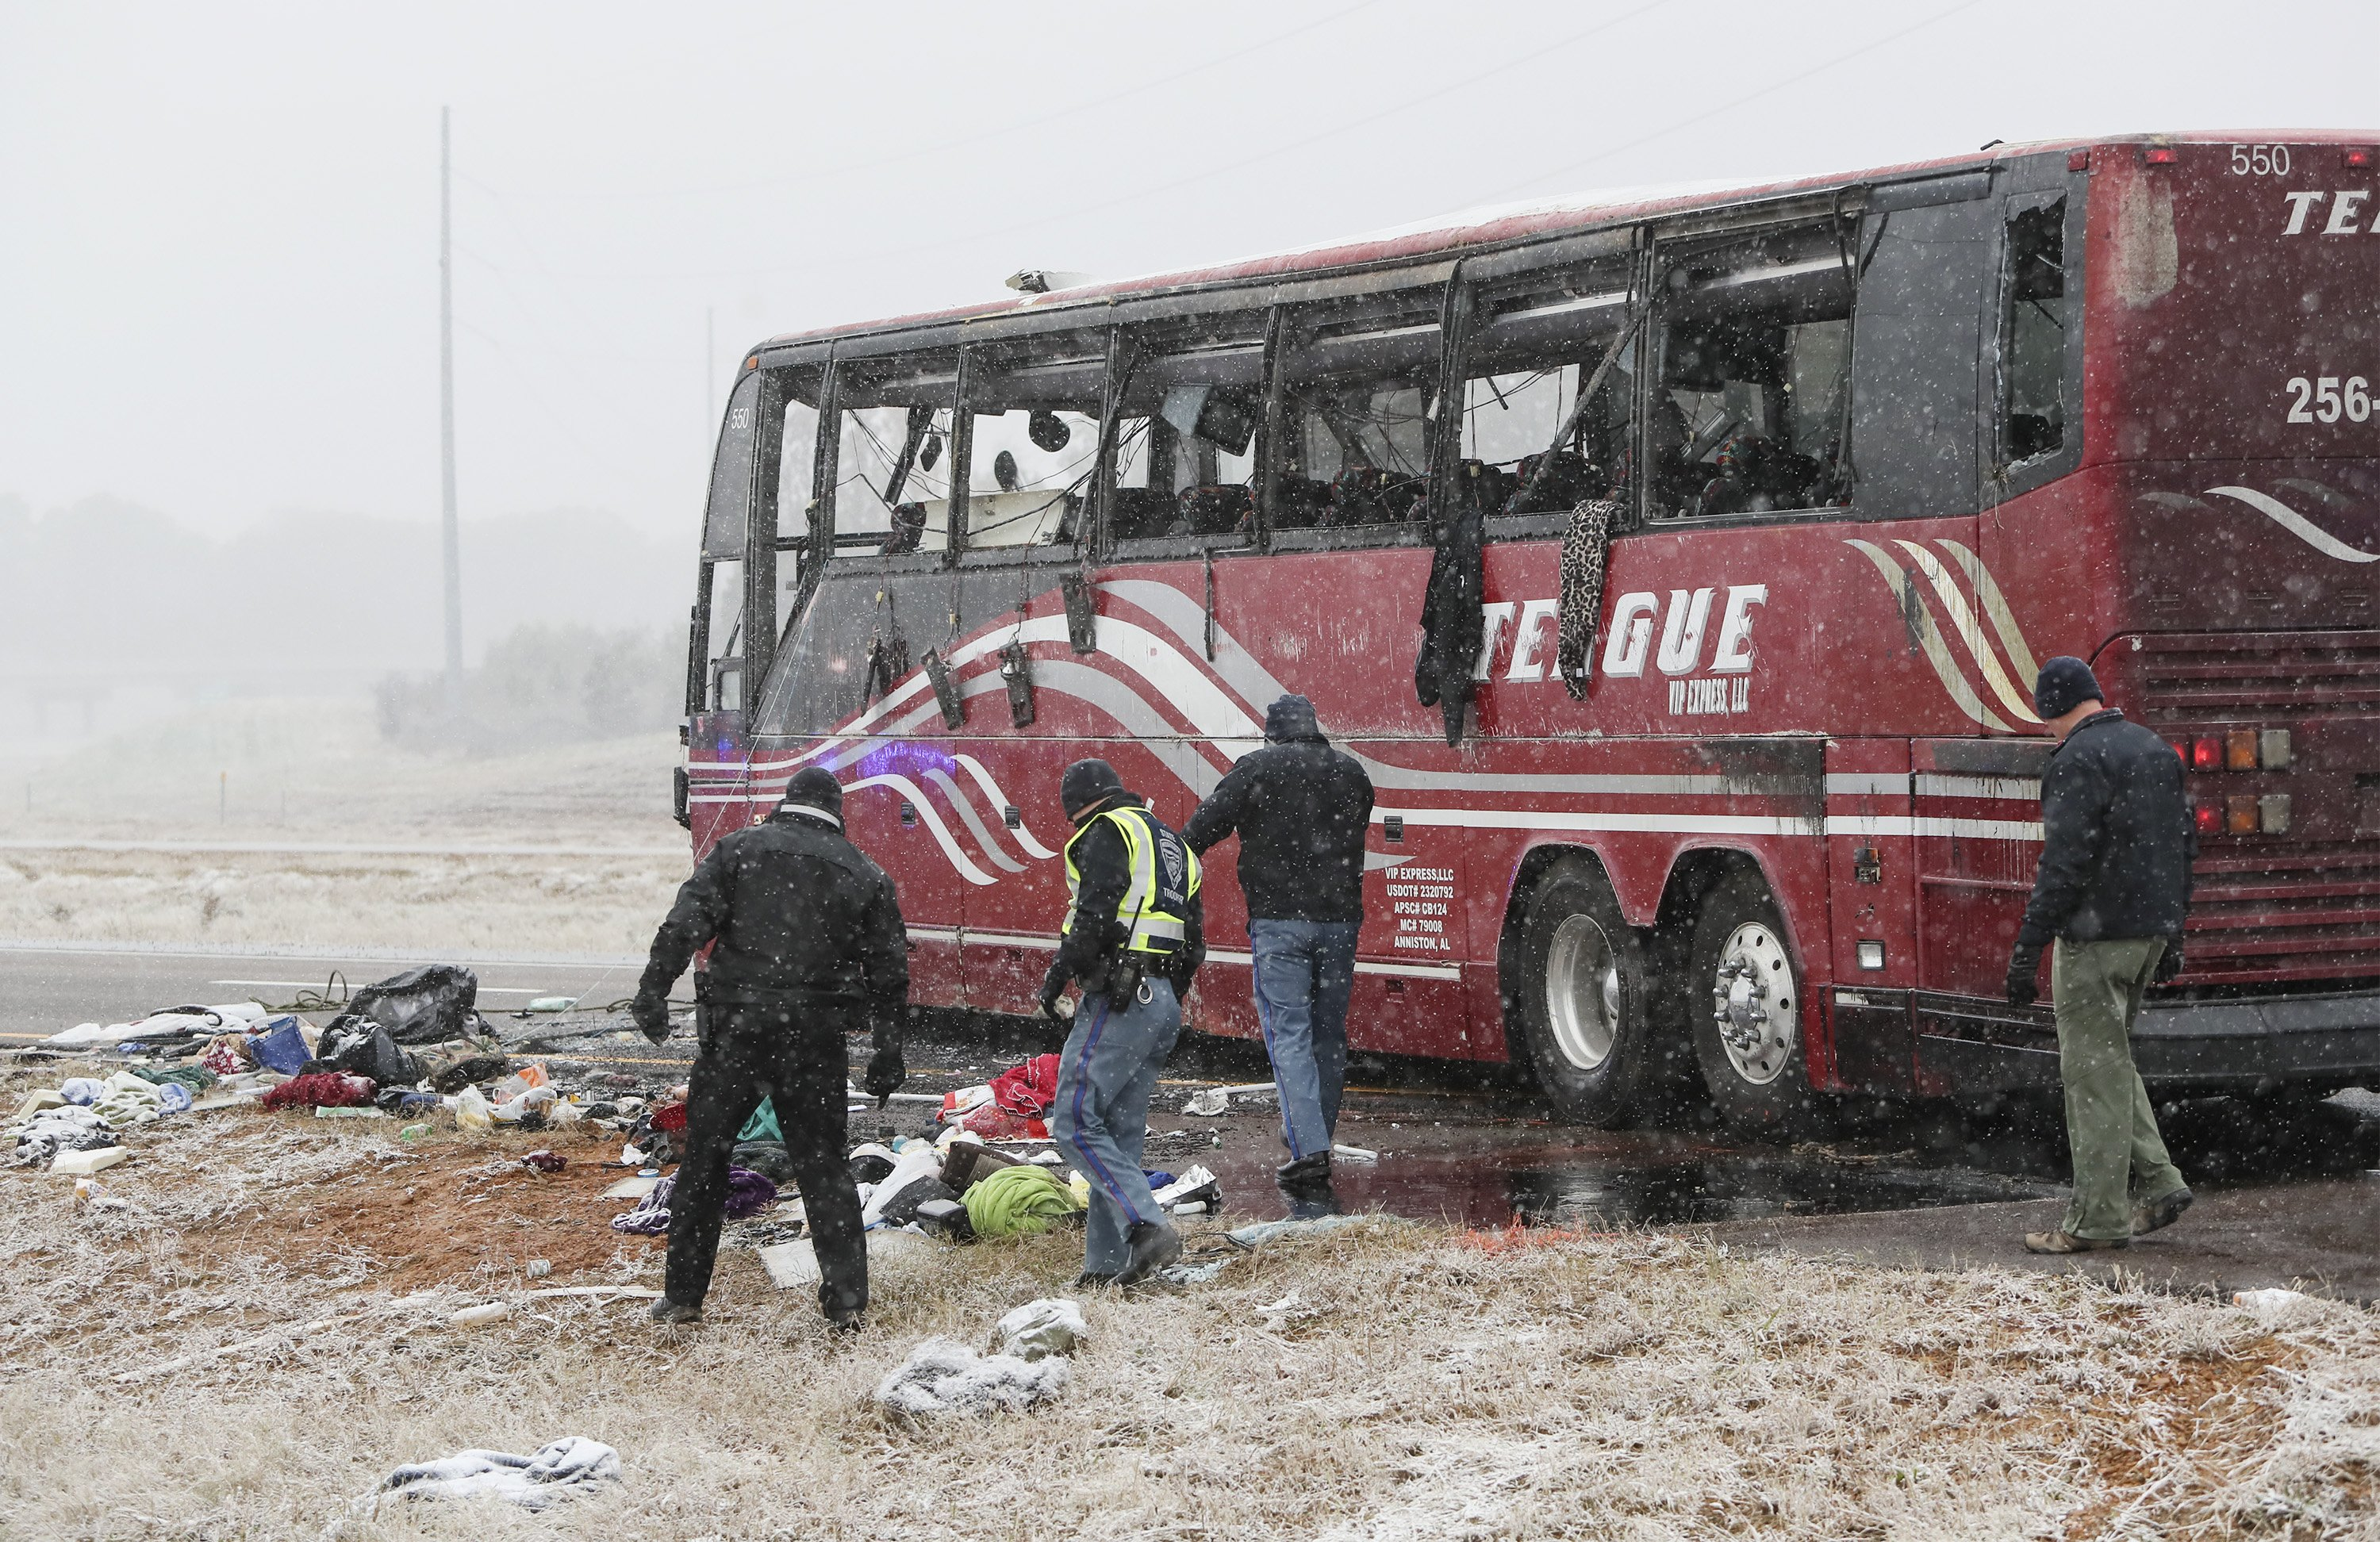 Storm: 2 dead, 44 hurt in bus crash on icy road near Memphis